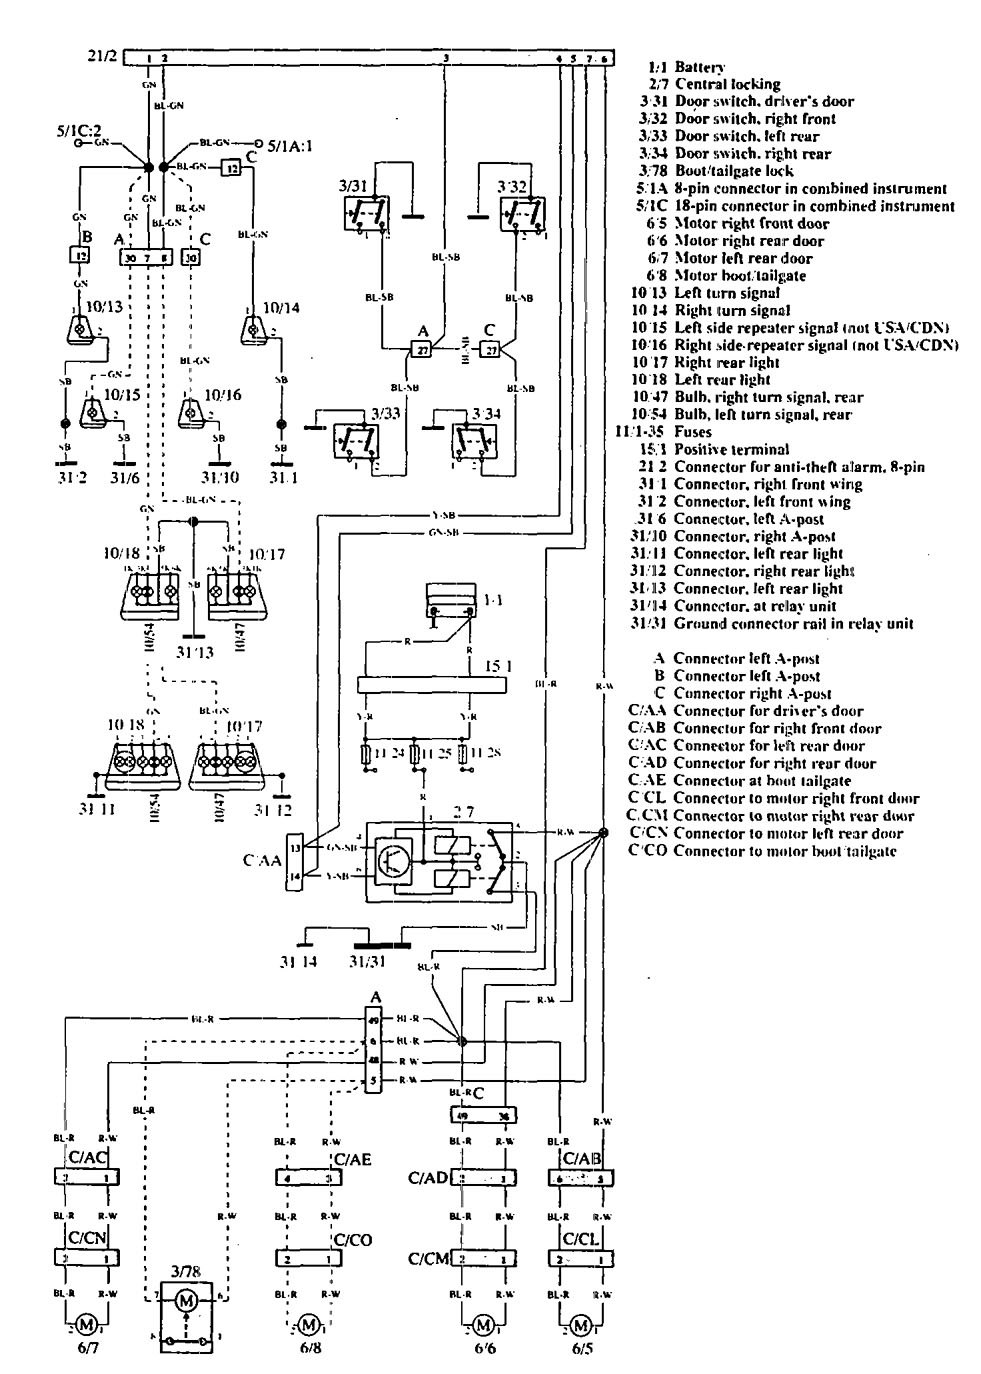 volvo 960 wiring diagram securoty anti theft 1 1992 1992 volvo 960 wiring diagram 1992 wiring diagrams collection  at mifinder.co